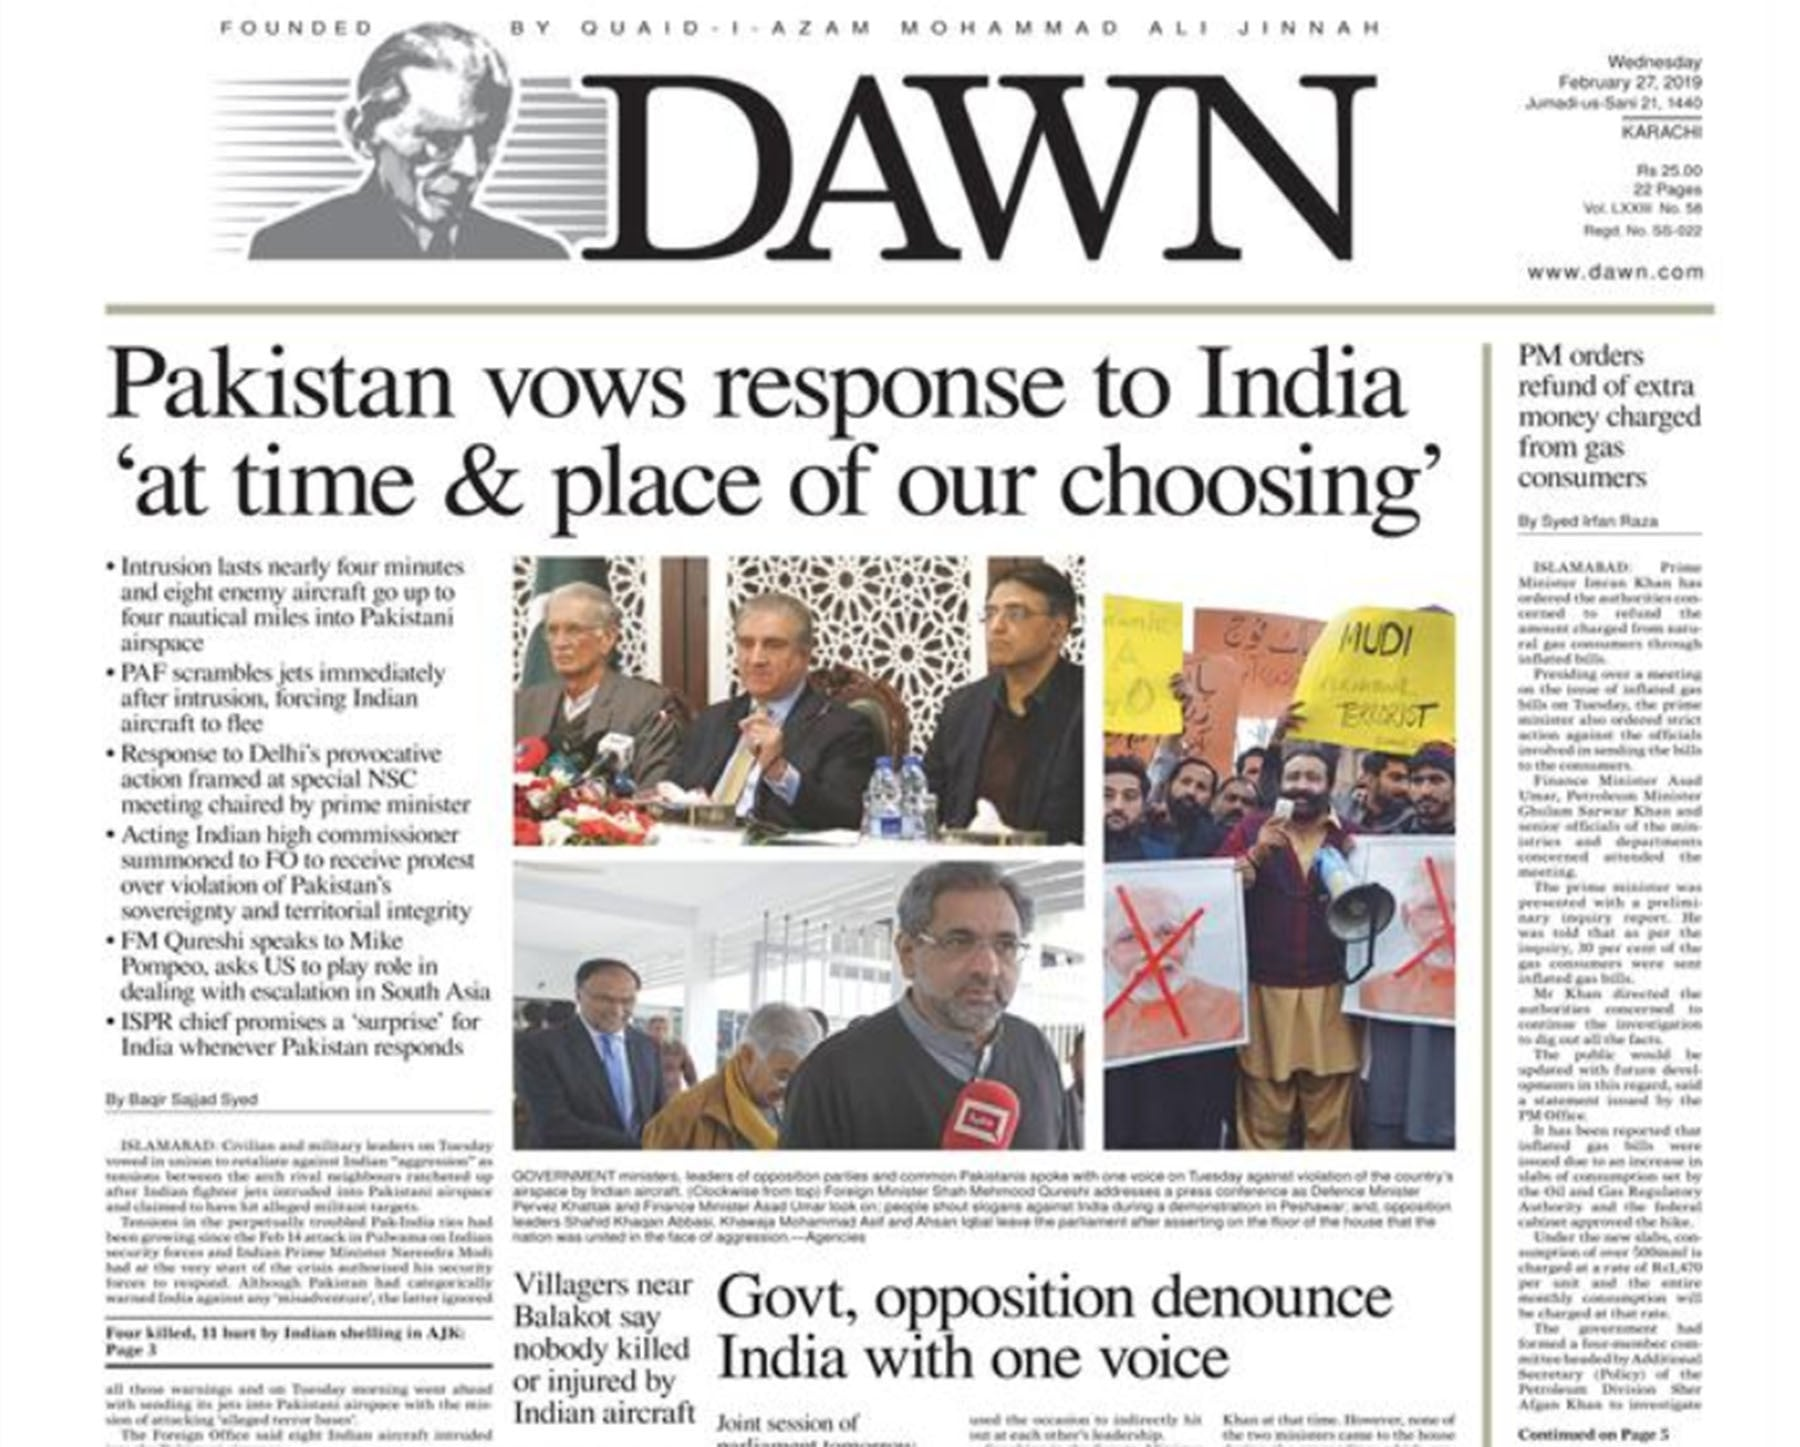 A screenshot of Dawn newspaper the morning after India violated Pakistani airspace.